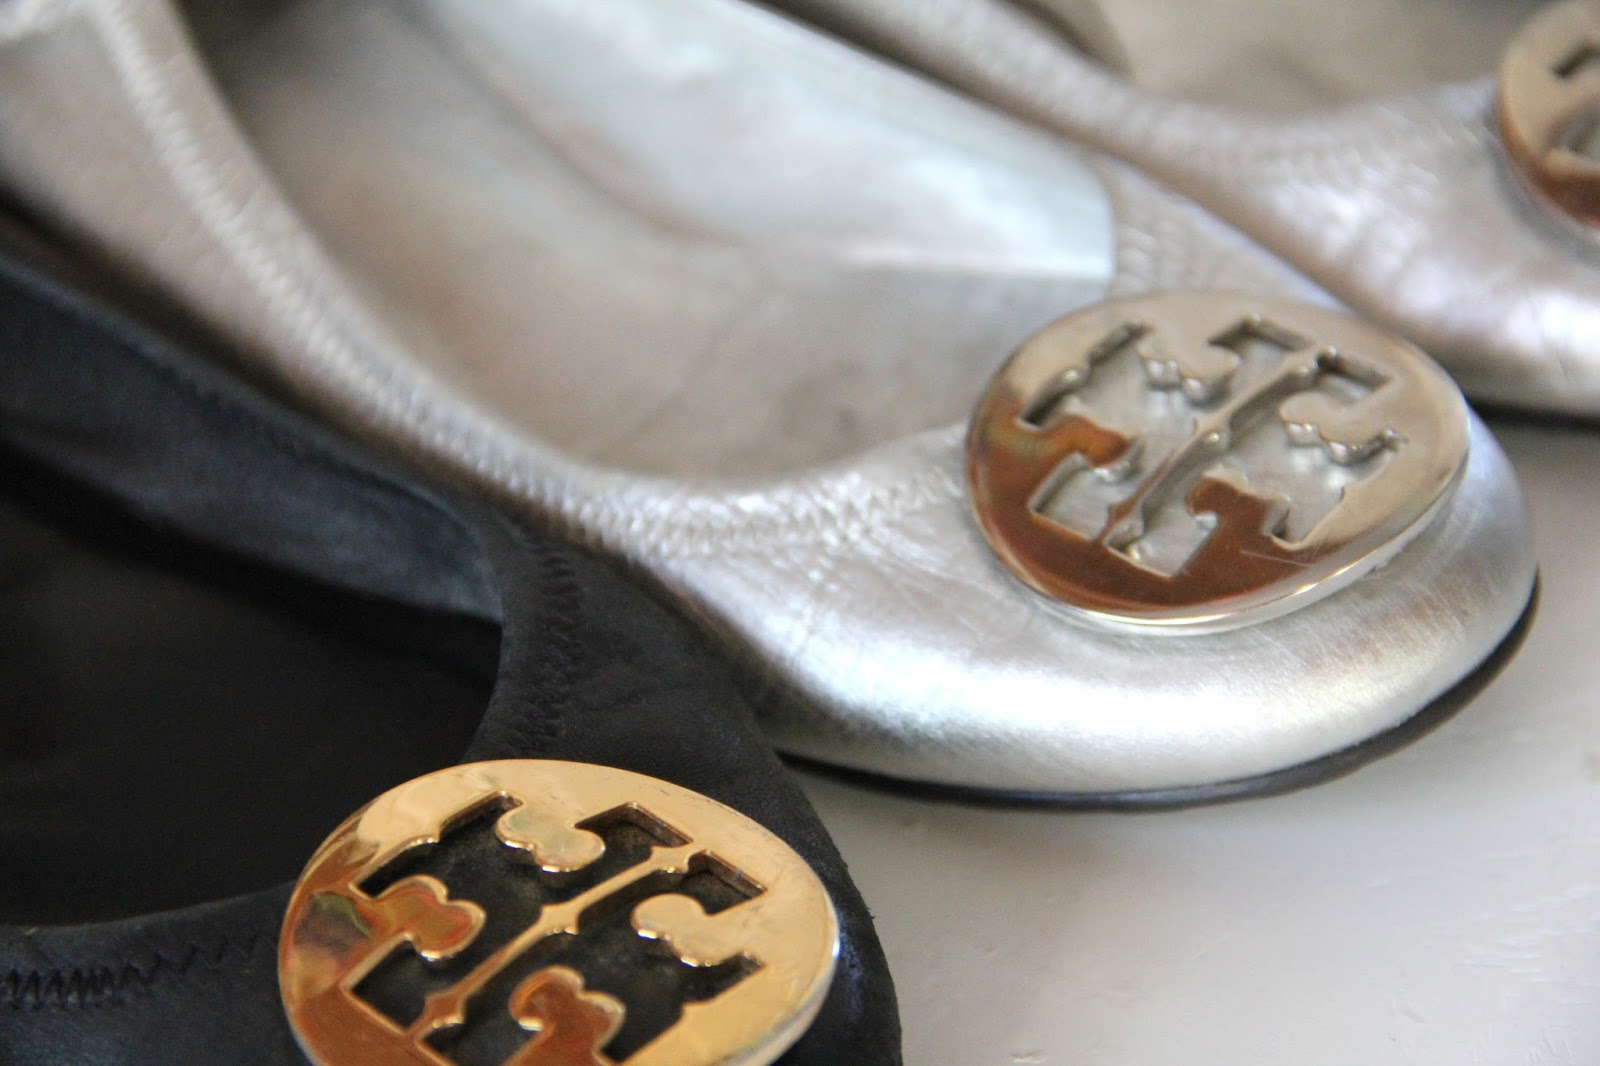 3215acc007ac Buckle- Tory Burch Revas have a monogrammed logo buckle on the toe of the  flat. The logo comes in GOLD and SILVER. No other colors.